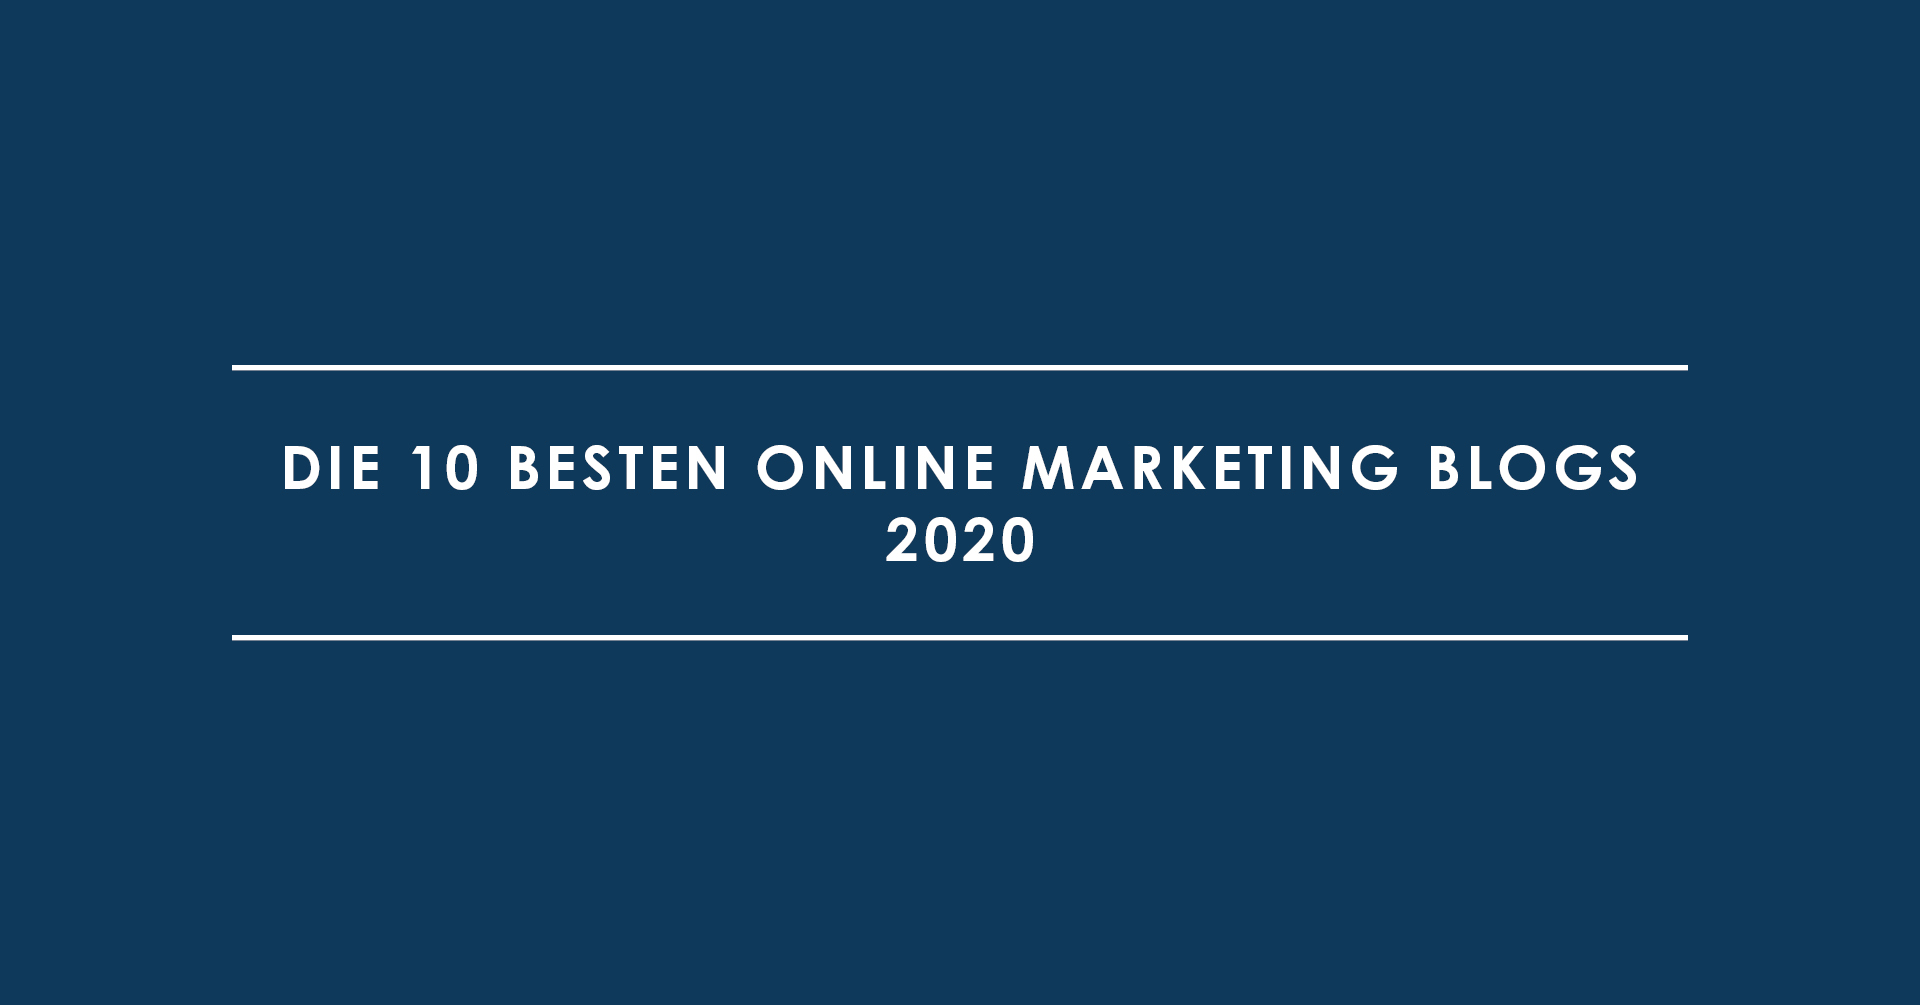 Die 10 besten Online Marketing Blogs 2020